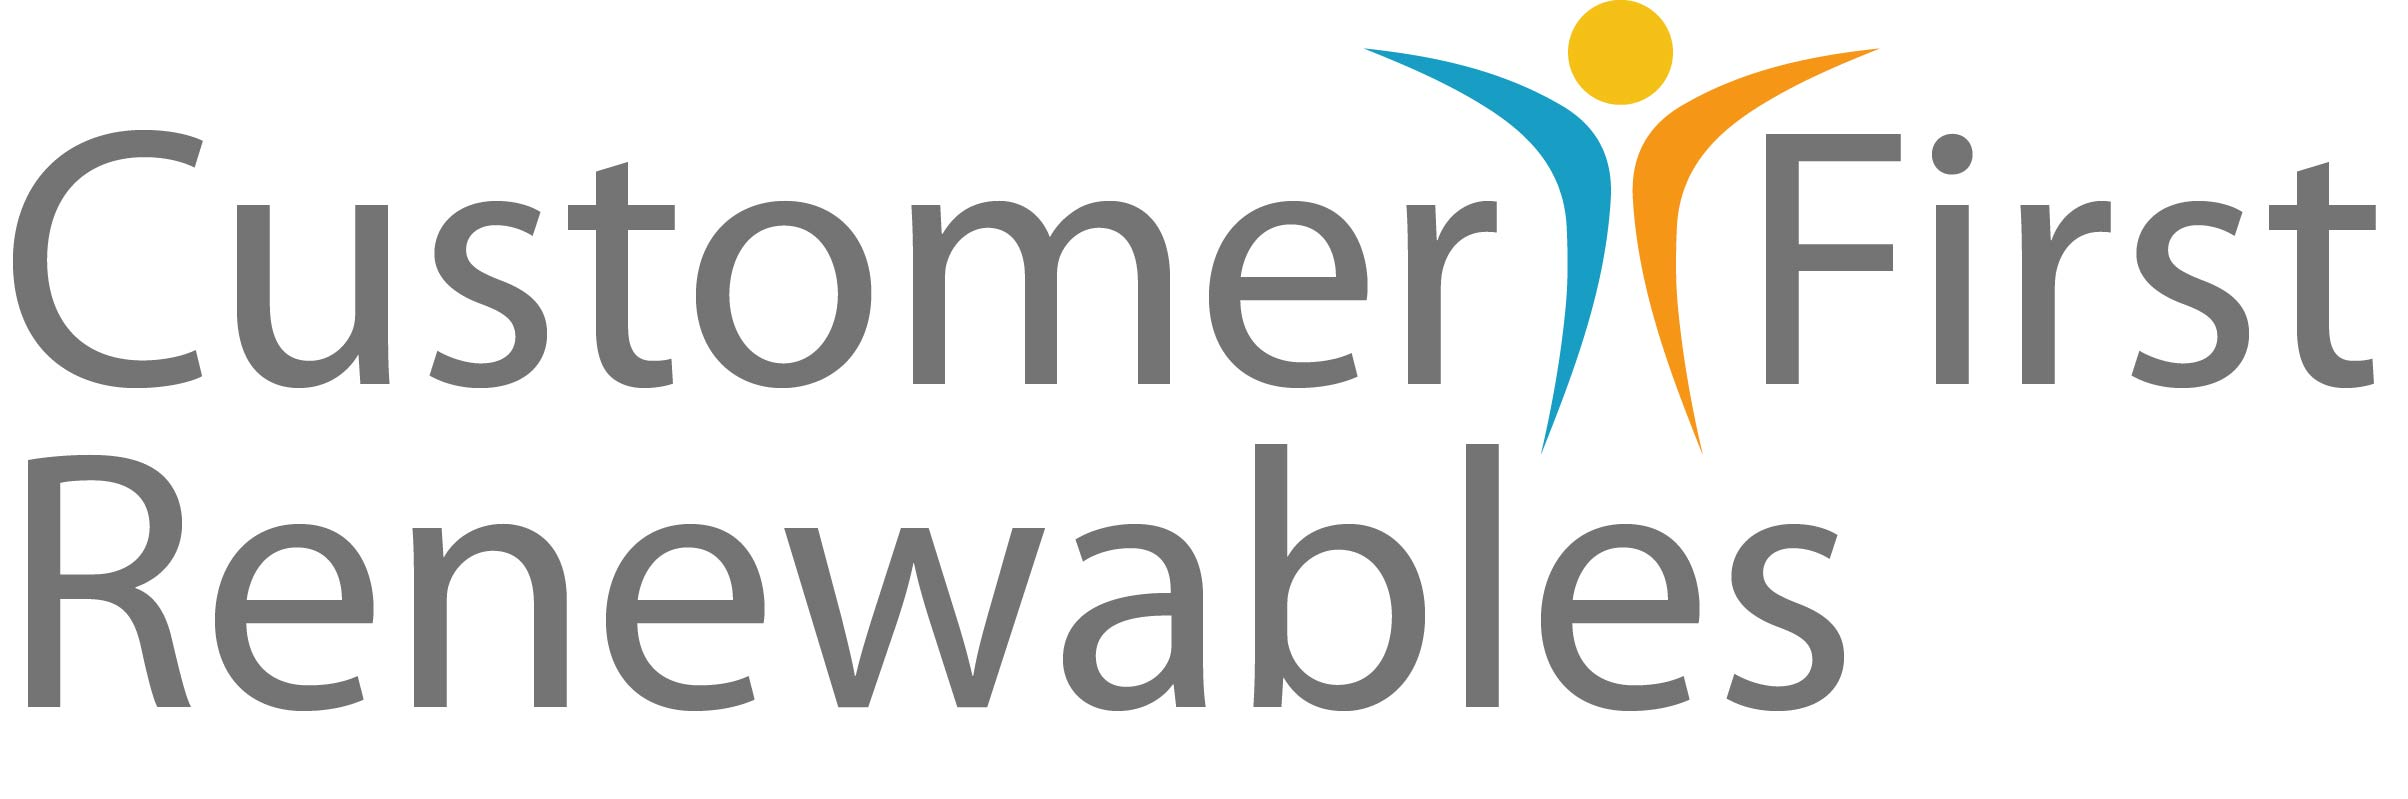 Customer First Renewables